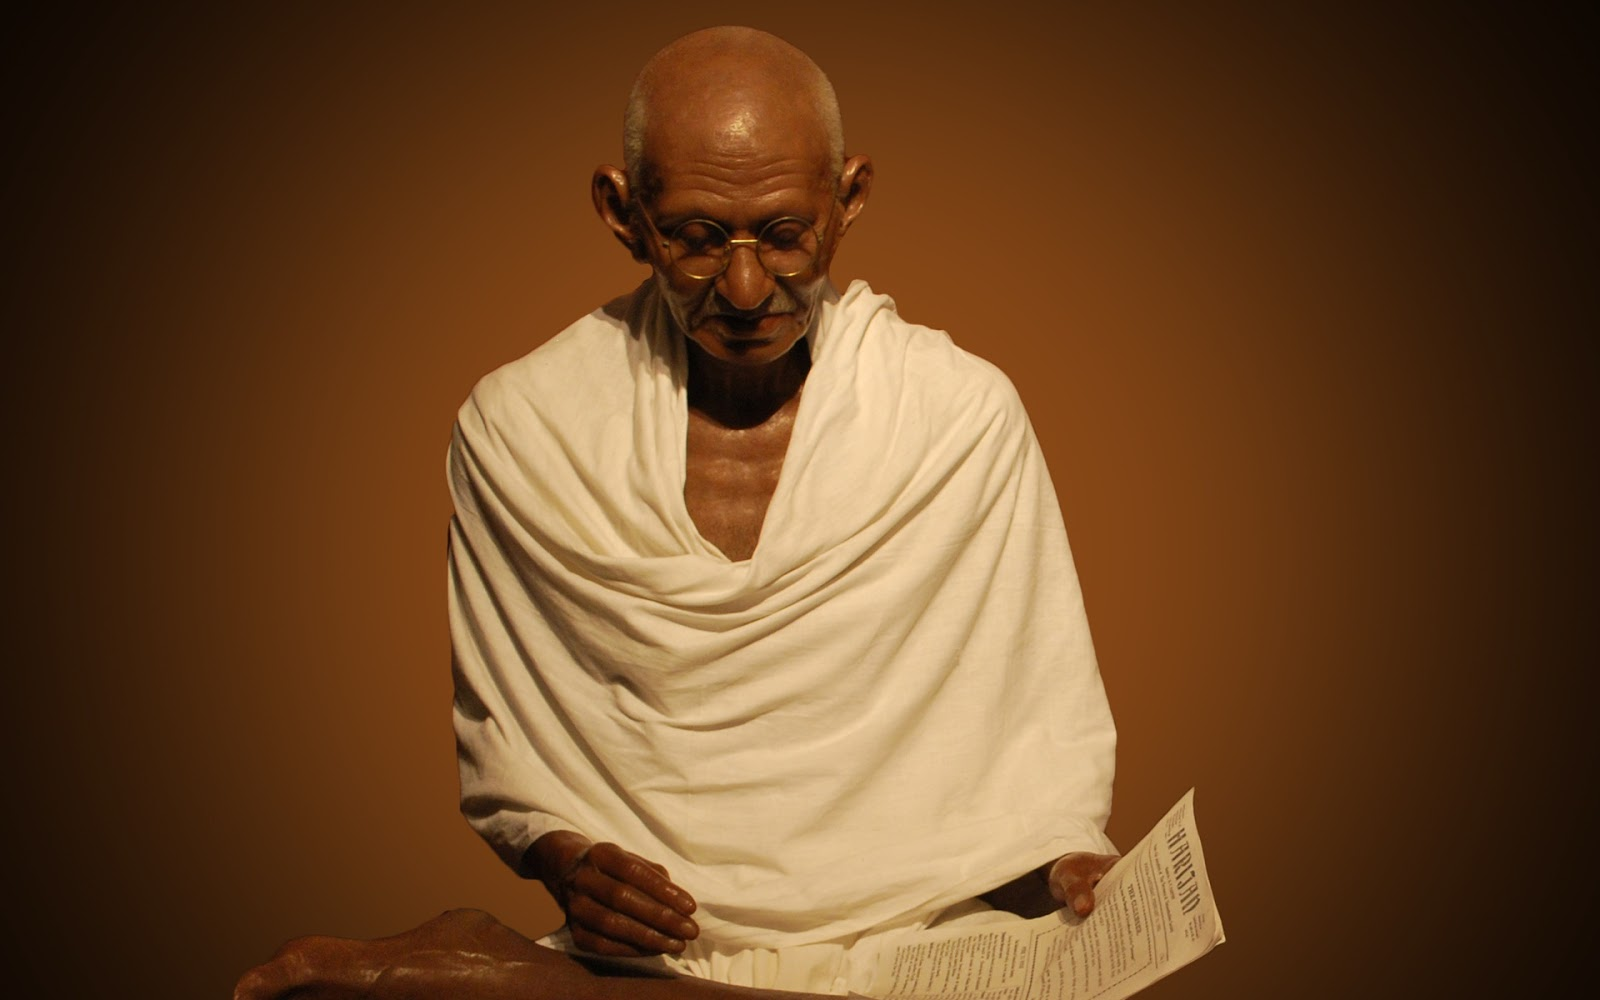 about gandhiji Where did gandhiji's first satyagraha experimented answer: south africa in 1906 , september to protest against the asiatic ordinance issued against the indians in transval 4.